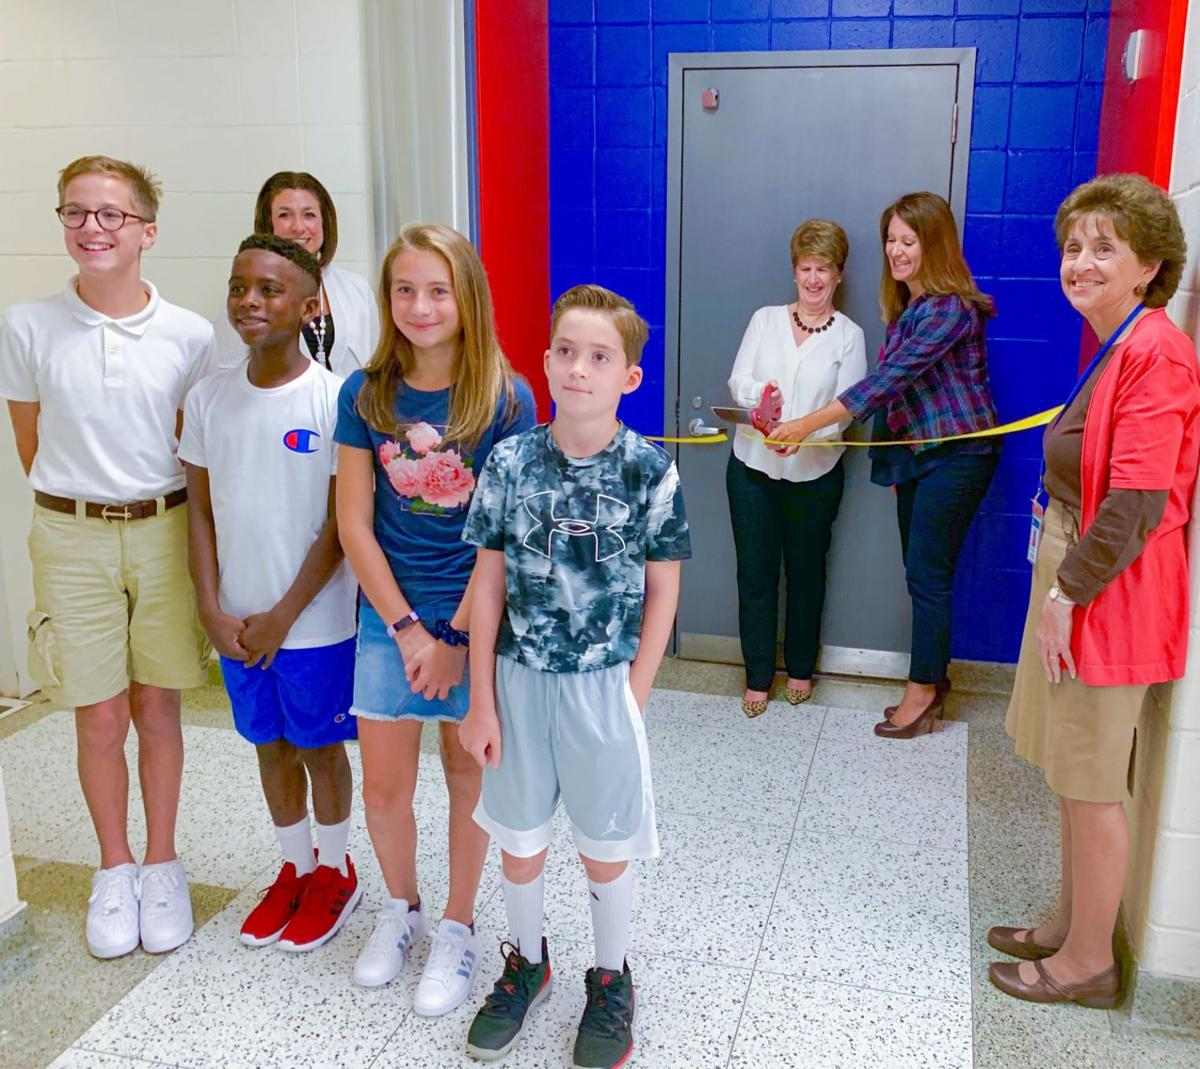 Cutting-edge STEM lab opens at Valley View School in Watchung